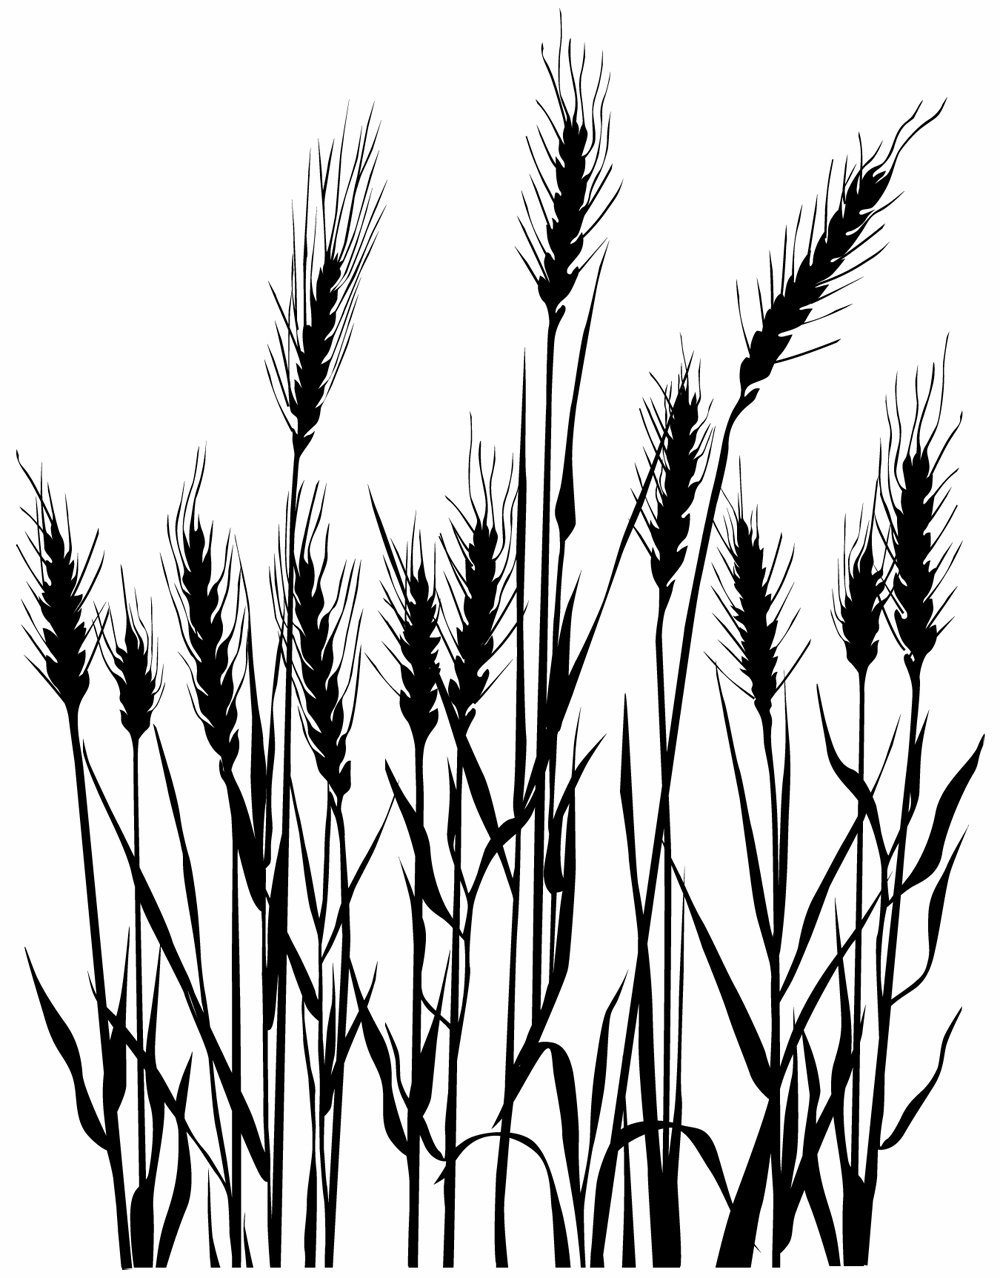 1000x1278 Hero Arts Woodblock Stamp Silhouette Grass Arts